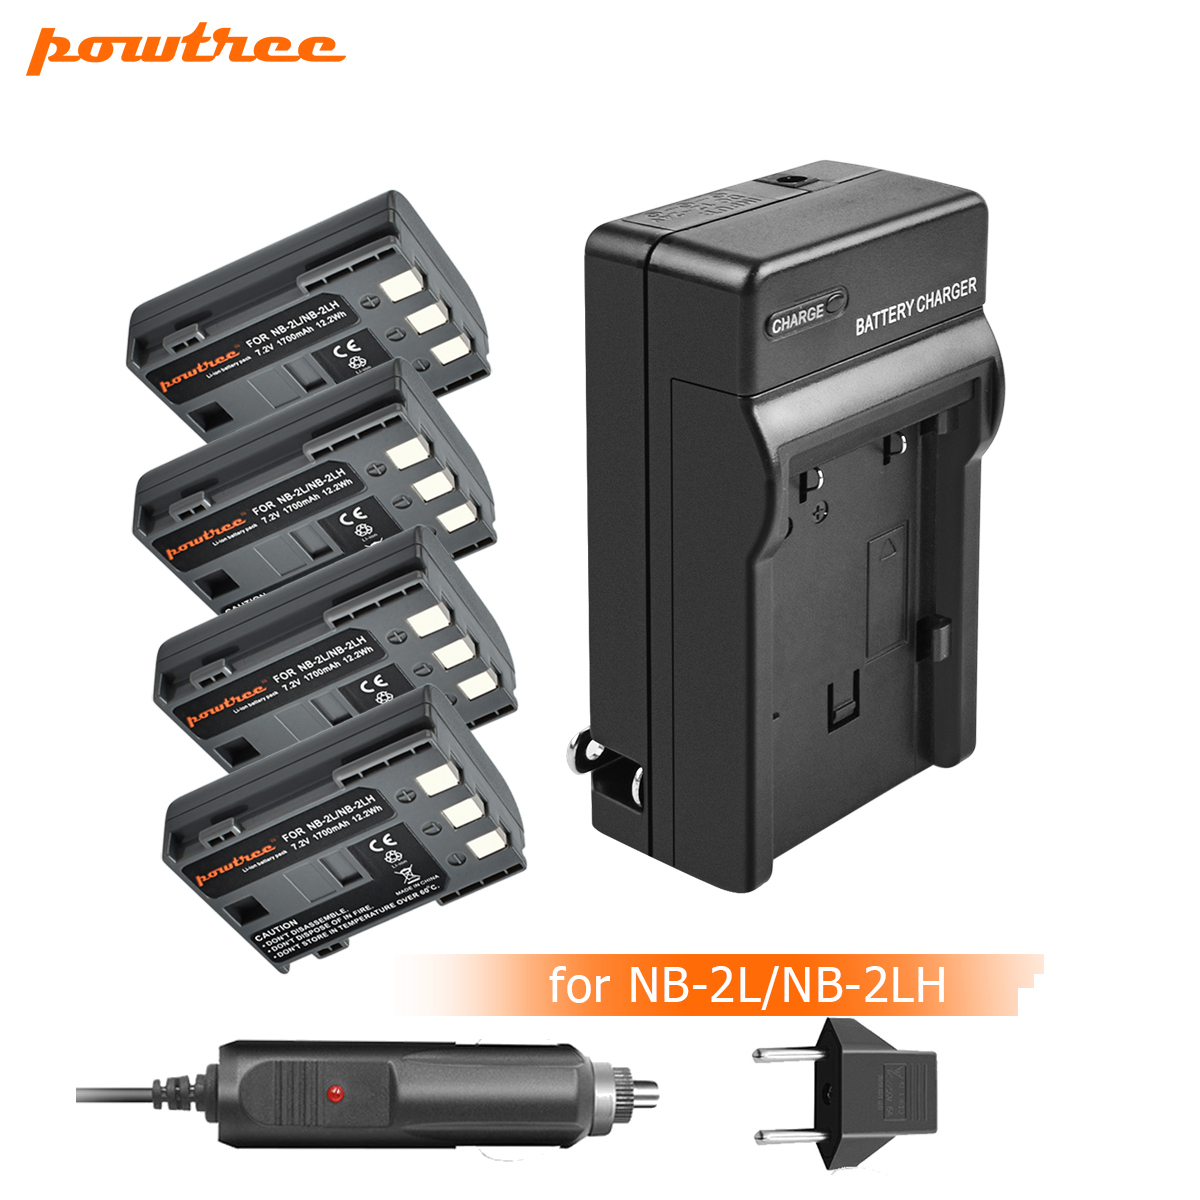 3pcs NB 2L NB 2L NB2L NB 2LH NB 2LH Camera Li ion Battery LCD USB Charger for Canon DC310 DC320 DC330 DC410 DC420 HV20 HG1 L20 in Digital Batteries from Consumer Electronics